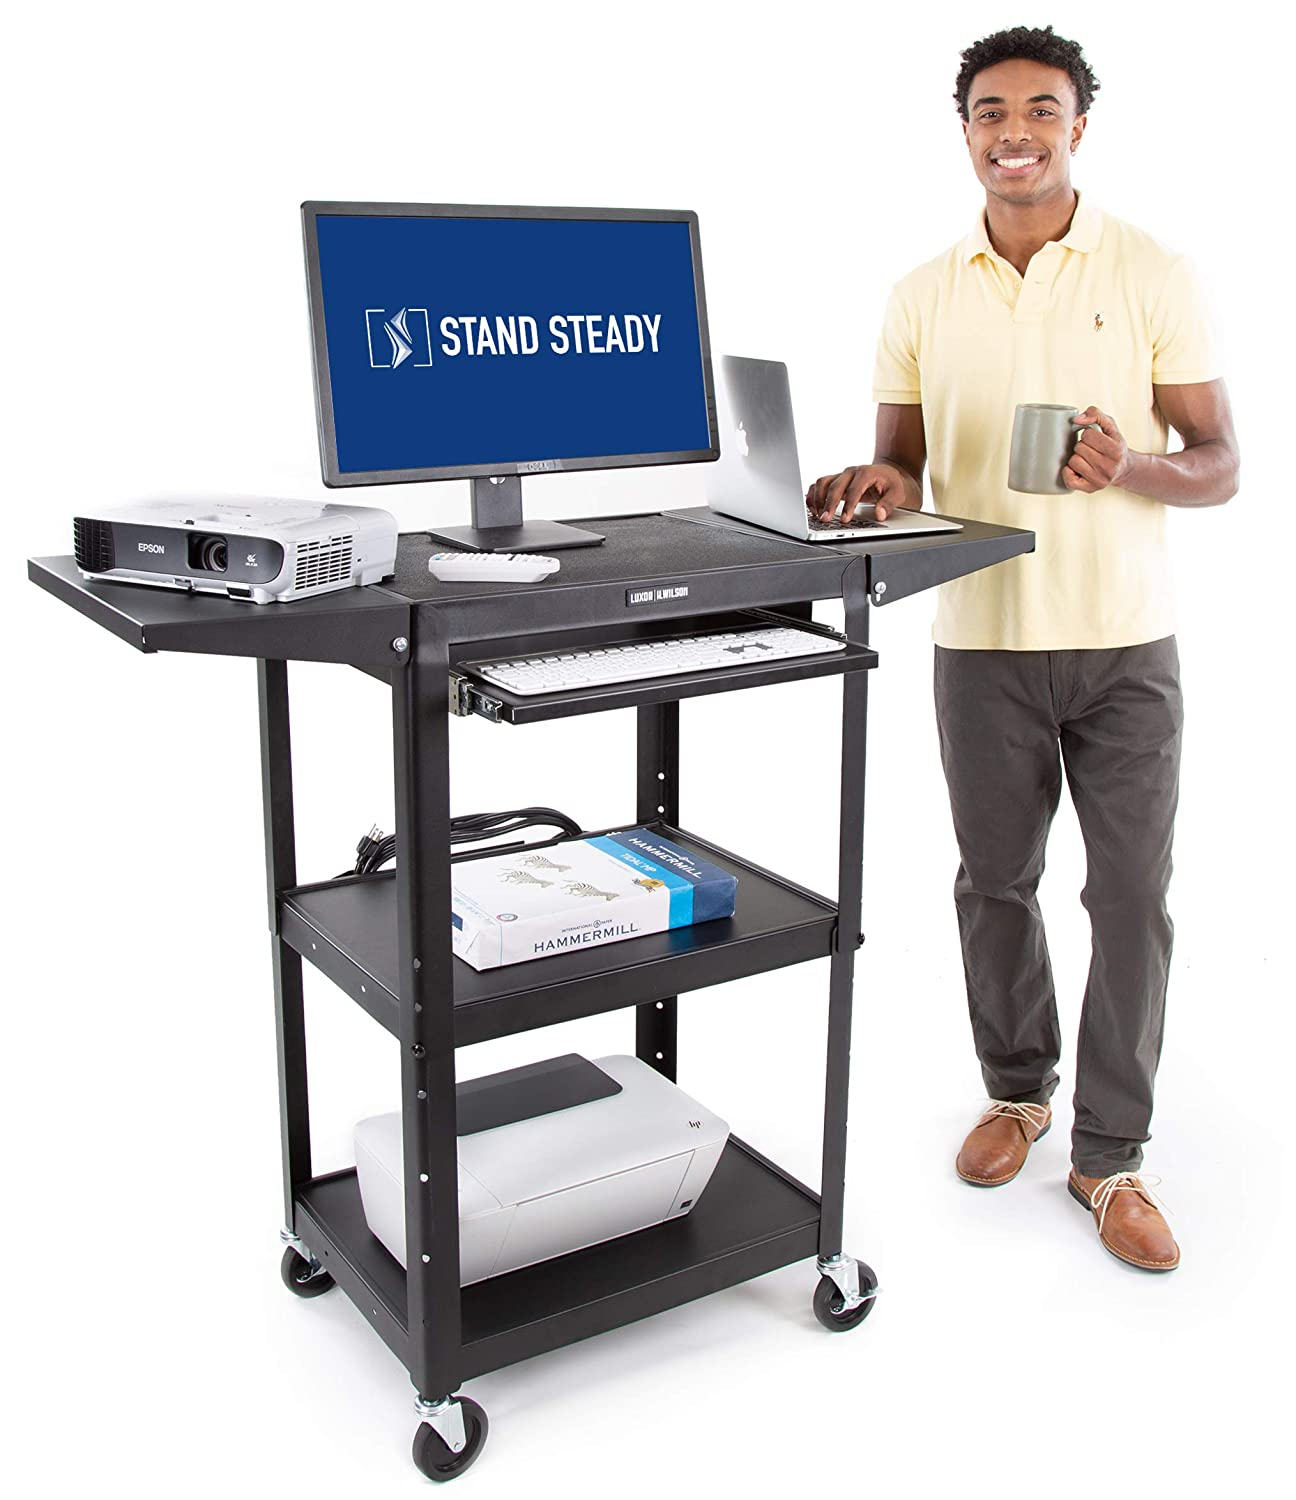 Line Leader Av Cart With Drop Leaf Shelves And Pullout Laptop Tray - Height  Adjustable Utility Cart - Includes Power Strip And Cord Management - Great